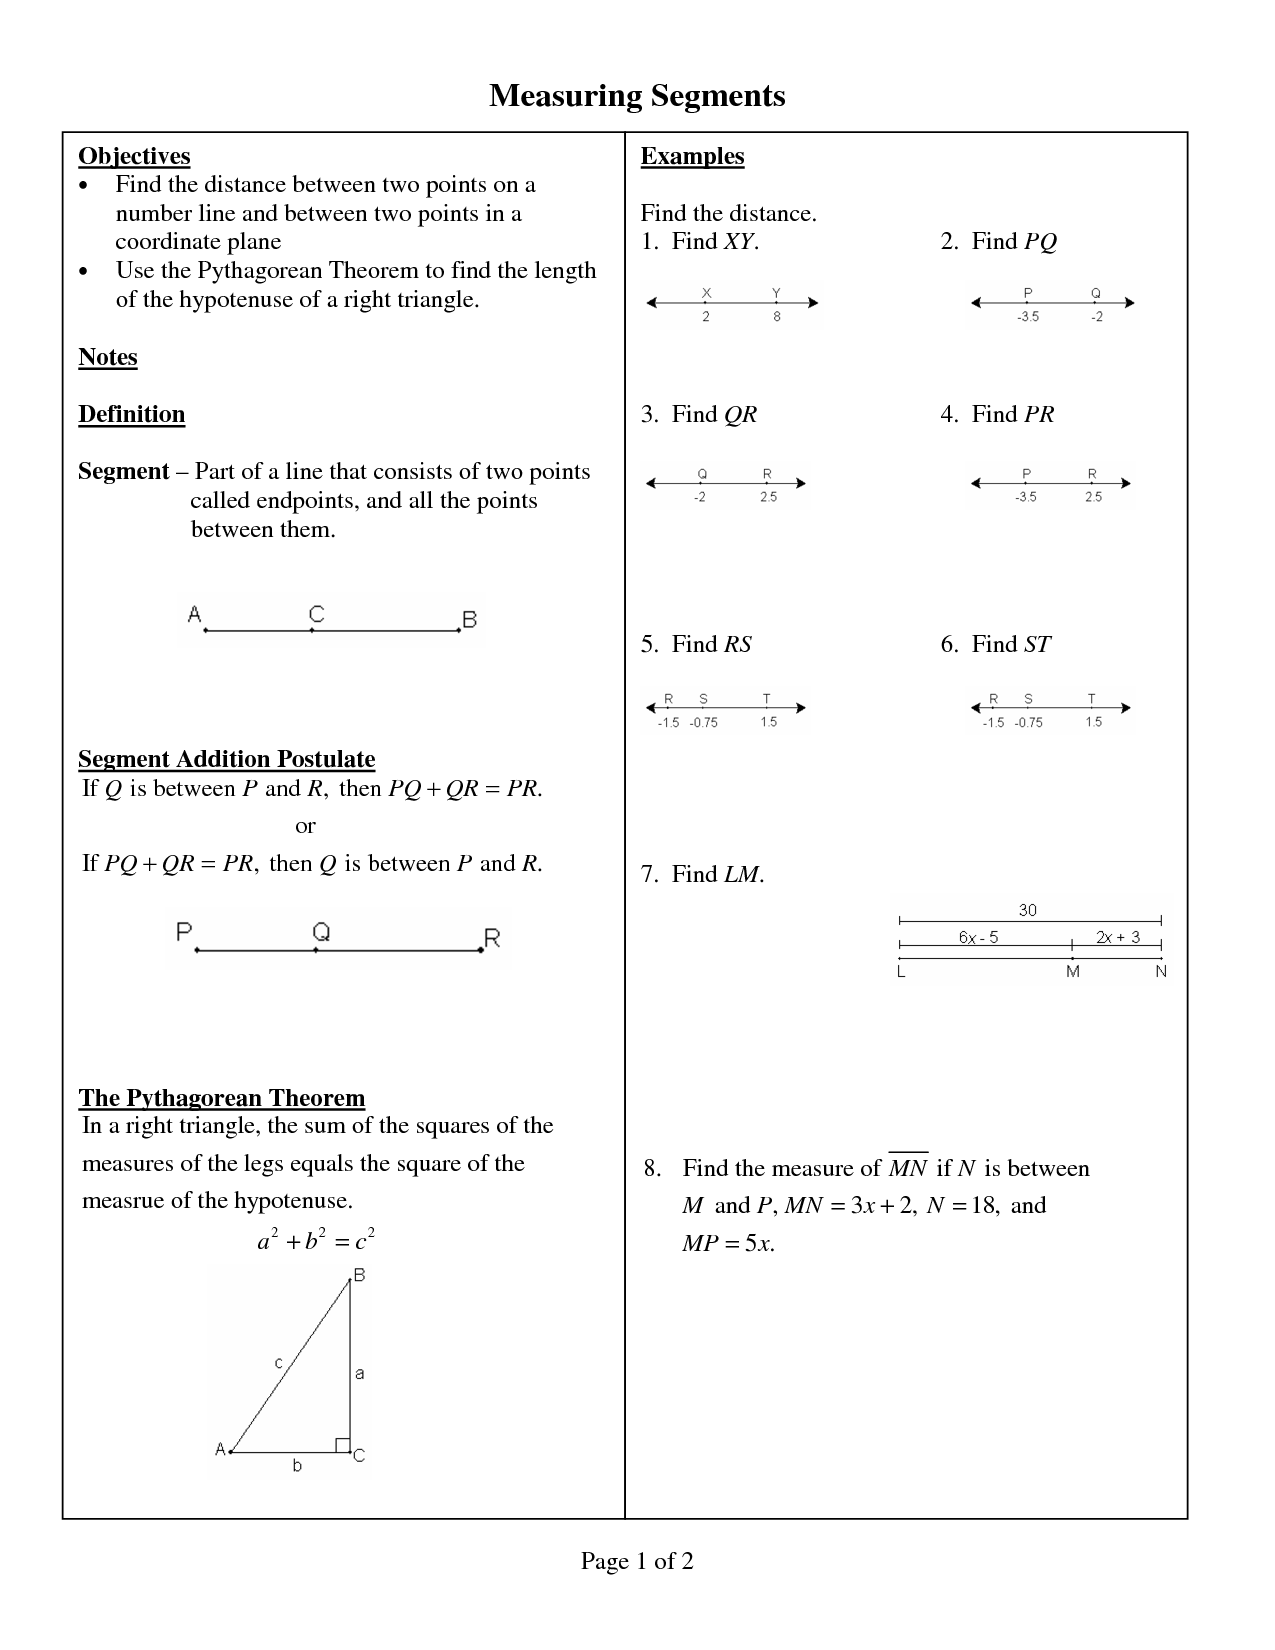 Line Segment Addition Postulate Worksheets